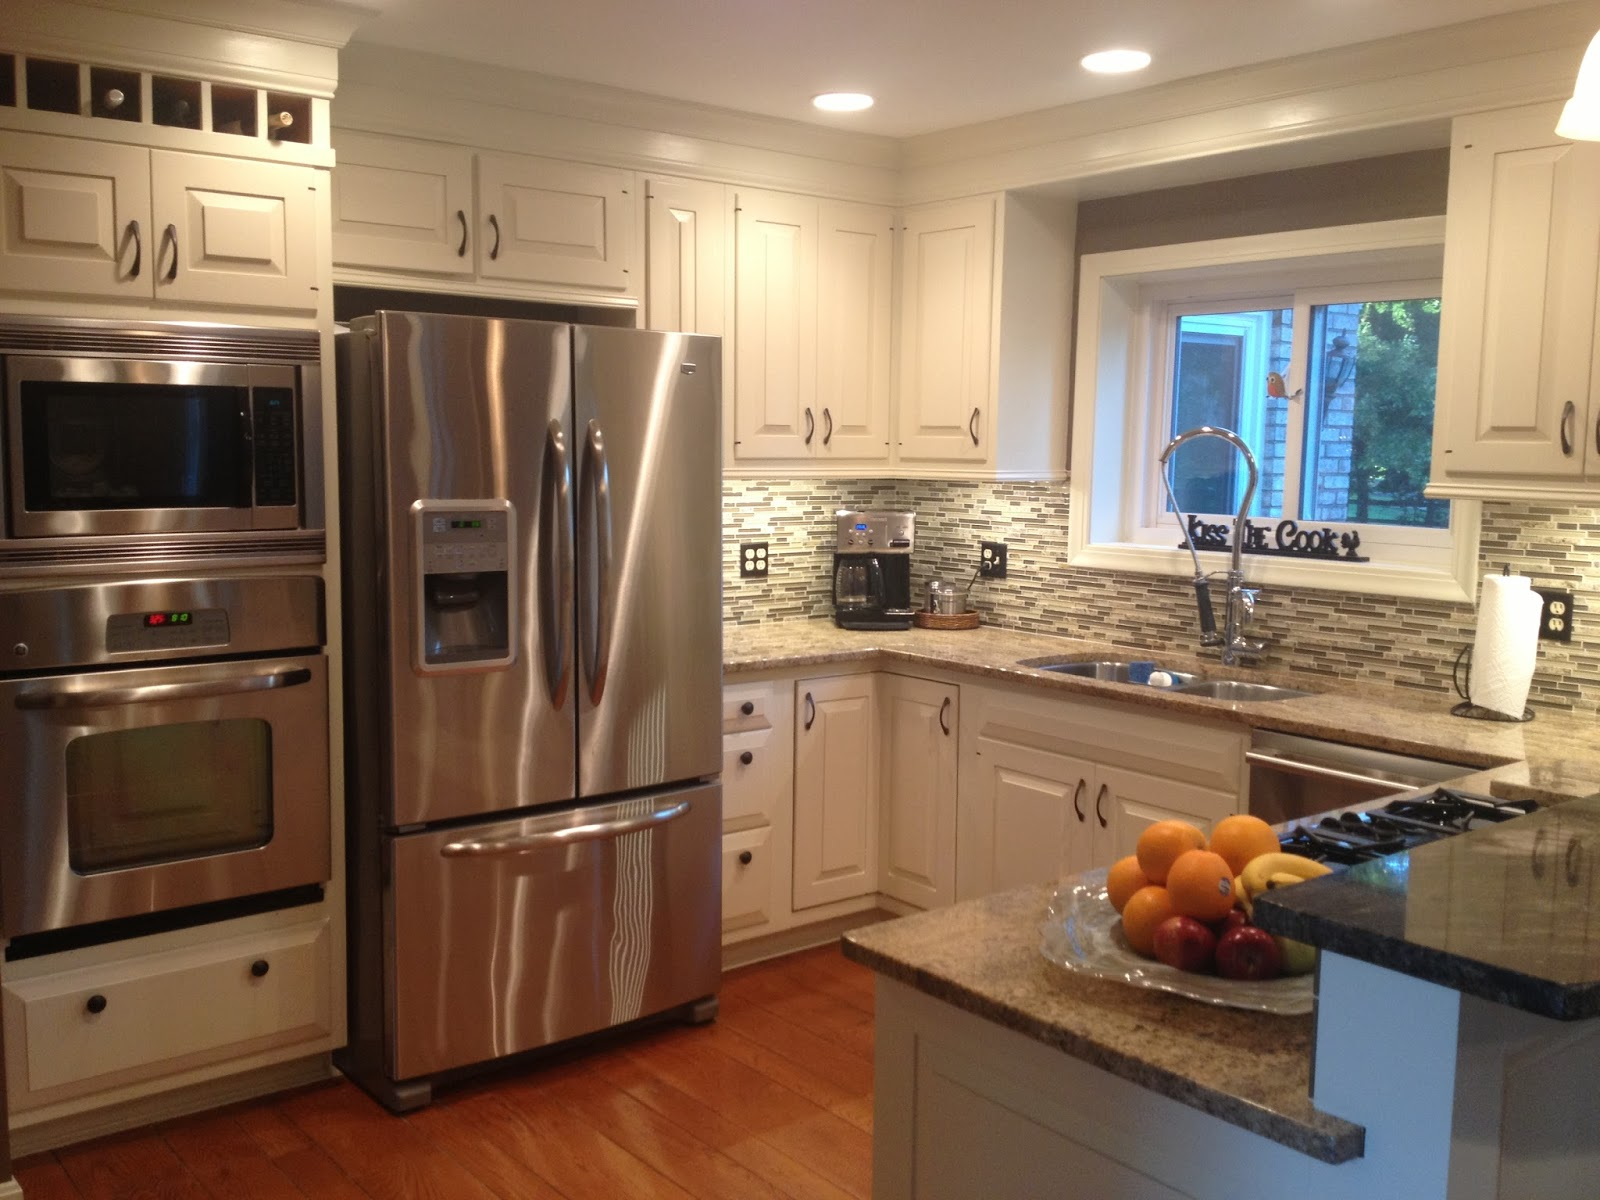 Kitchen Remodel On A Budget Four Seasons Style The New Kitchen  Remodel On A Budget